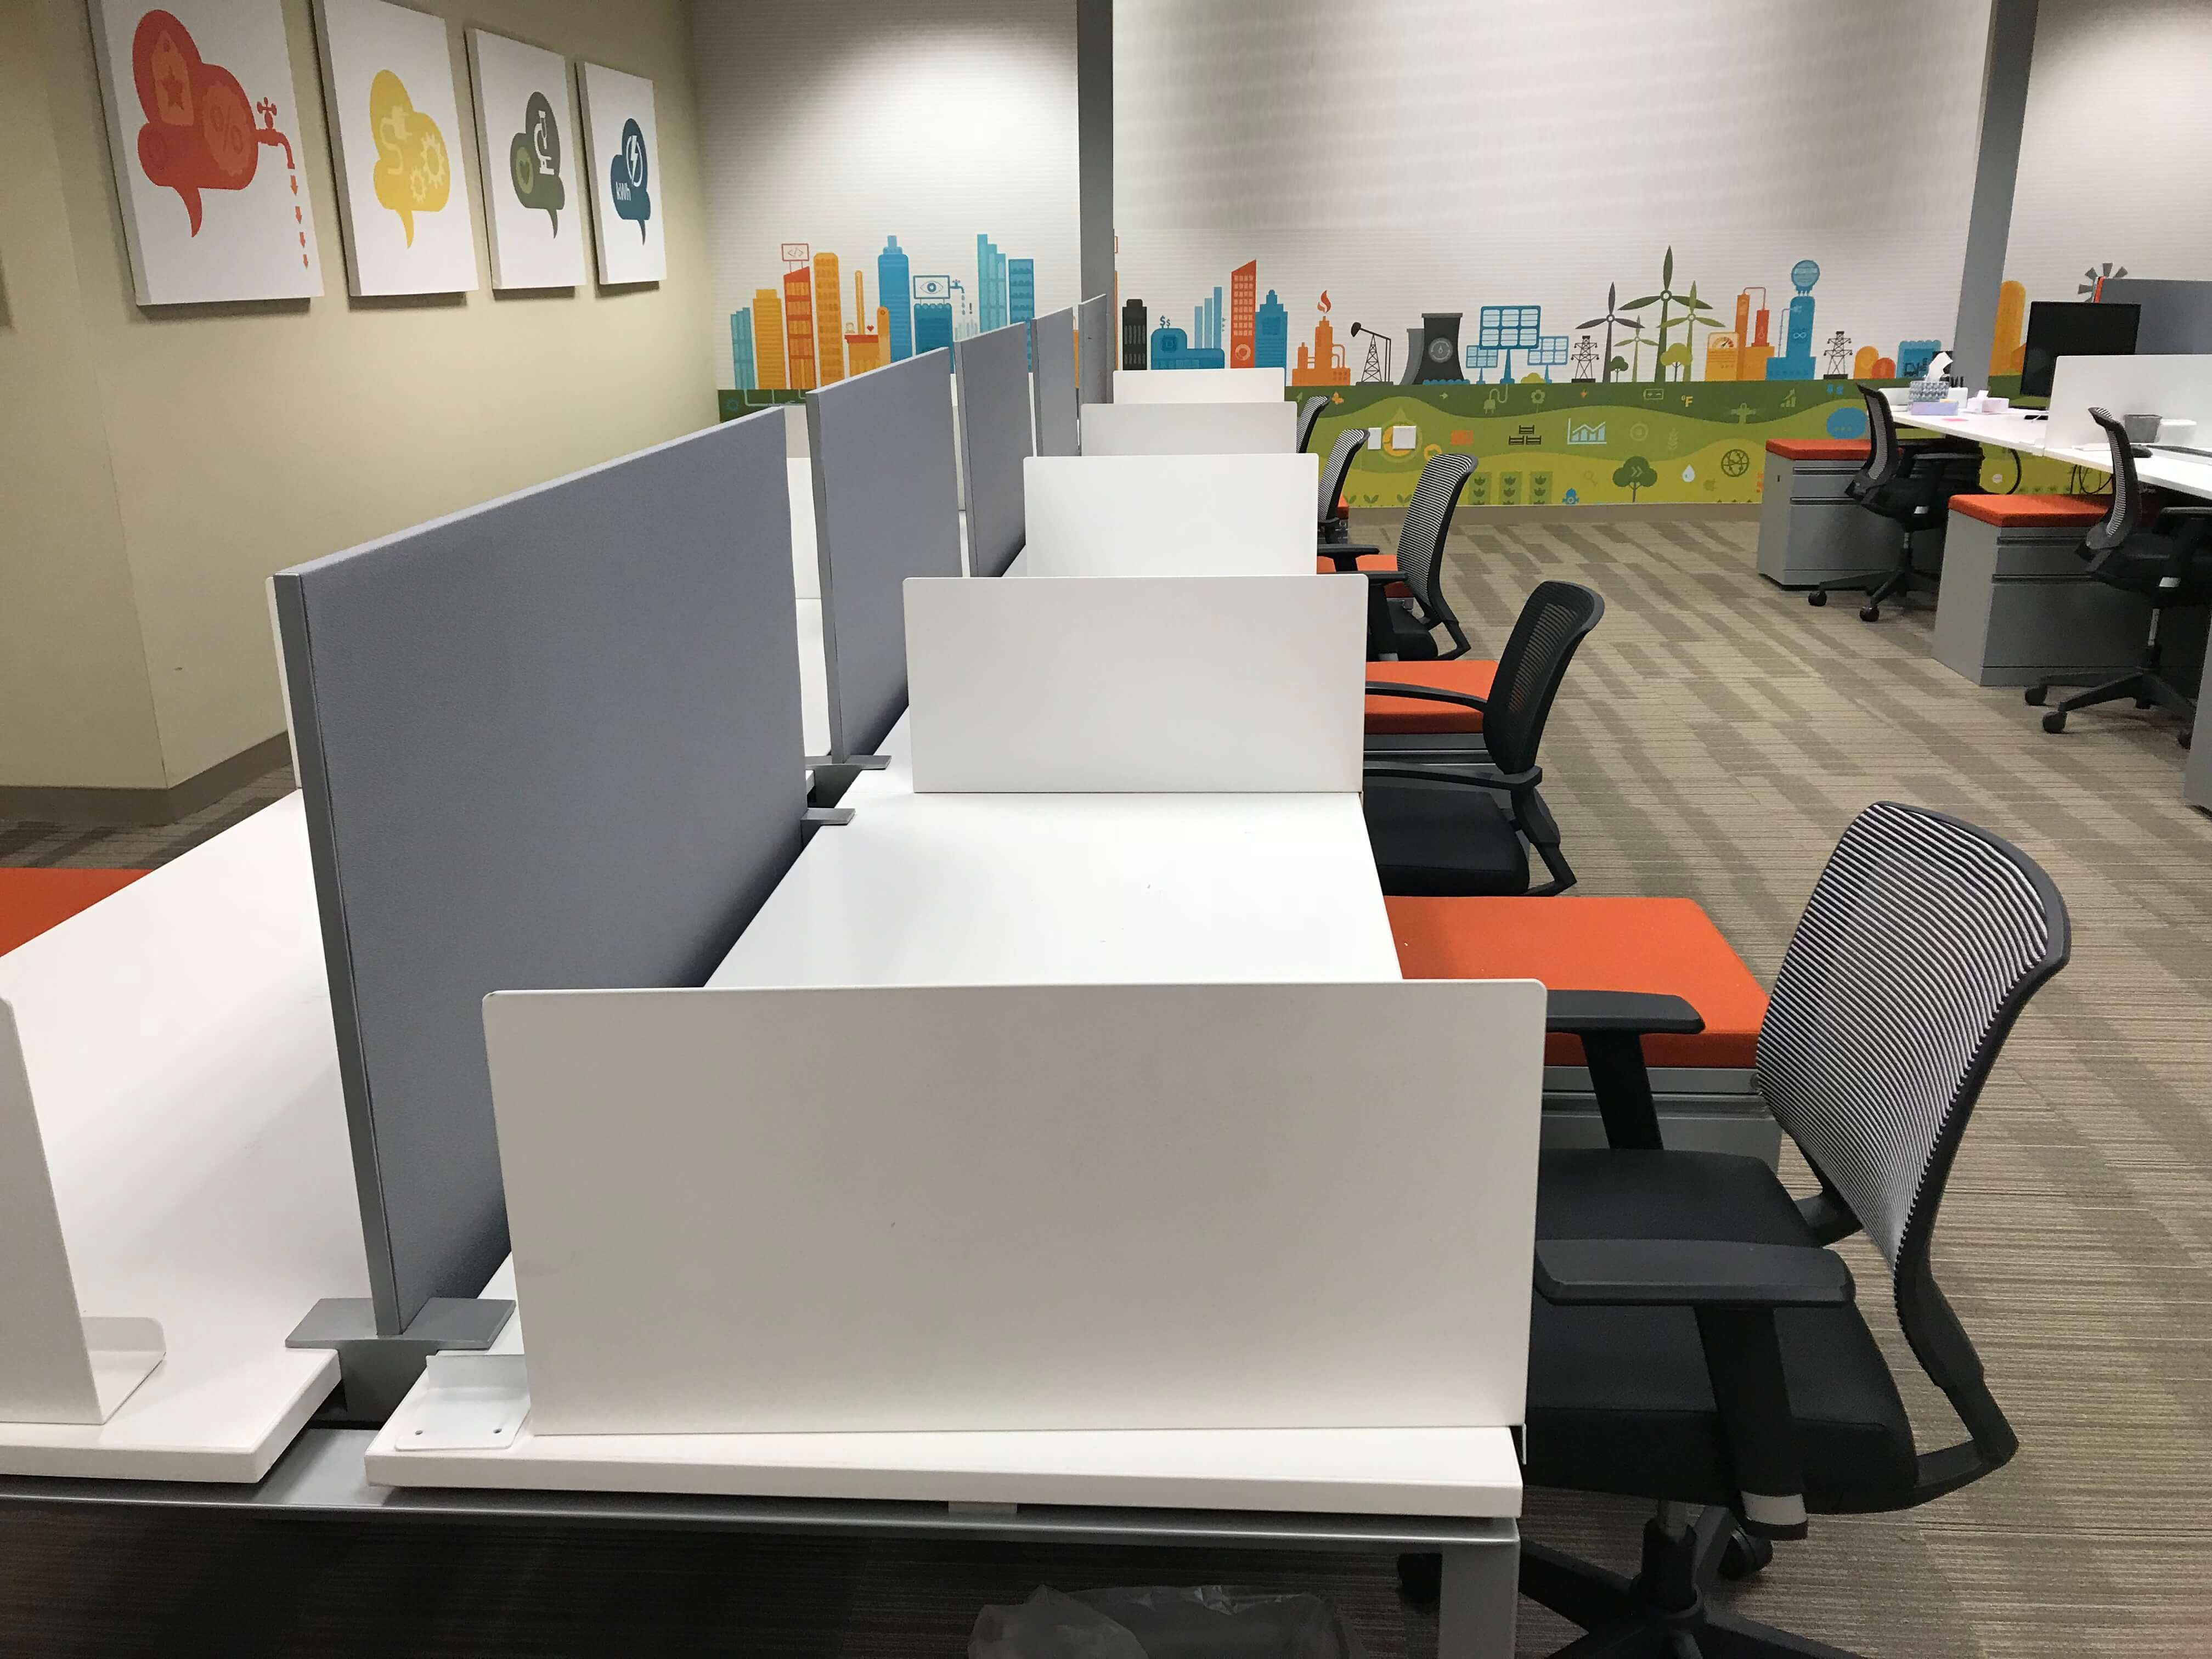 Small office cubicles Modern Call Center Used Cubicles 100818rri Cubicles Used Cubicles By Cubiclescom